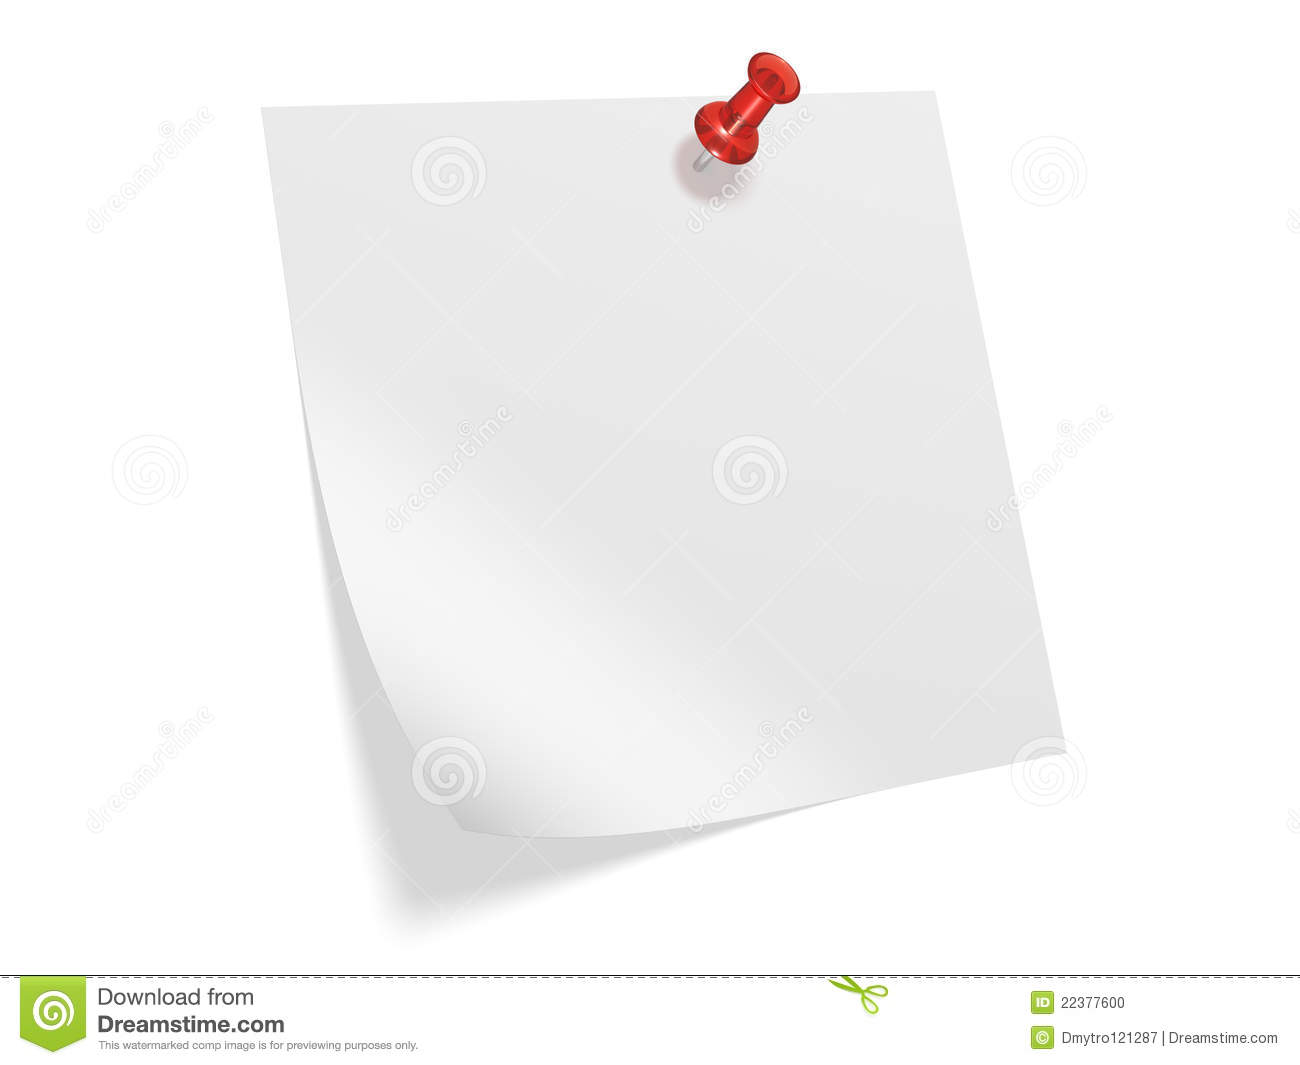 Paper Note Pinned With Thumbtack Stock Photo - Image: 22377600